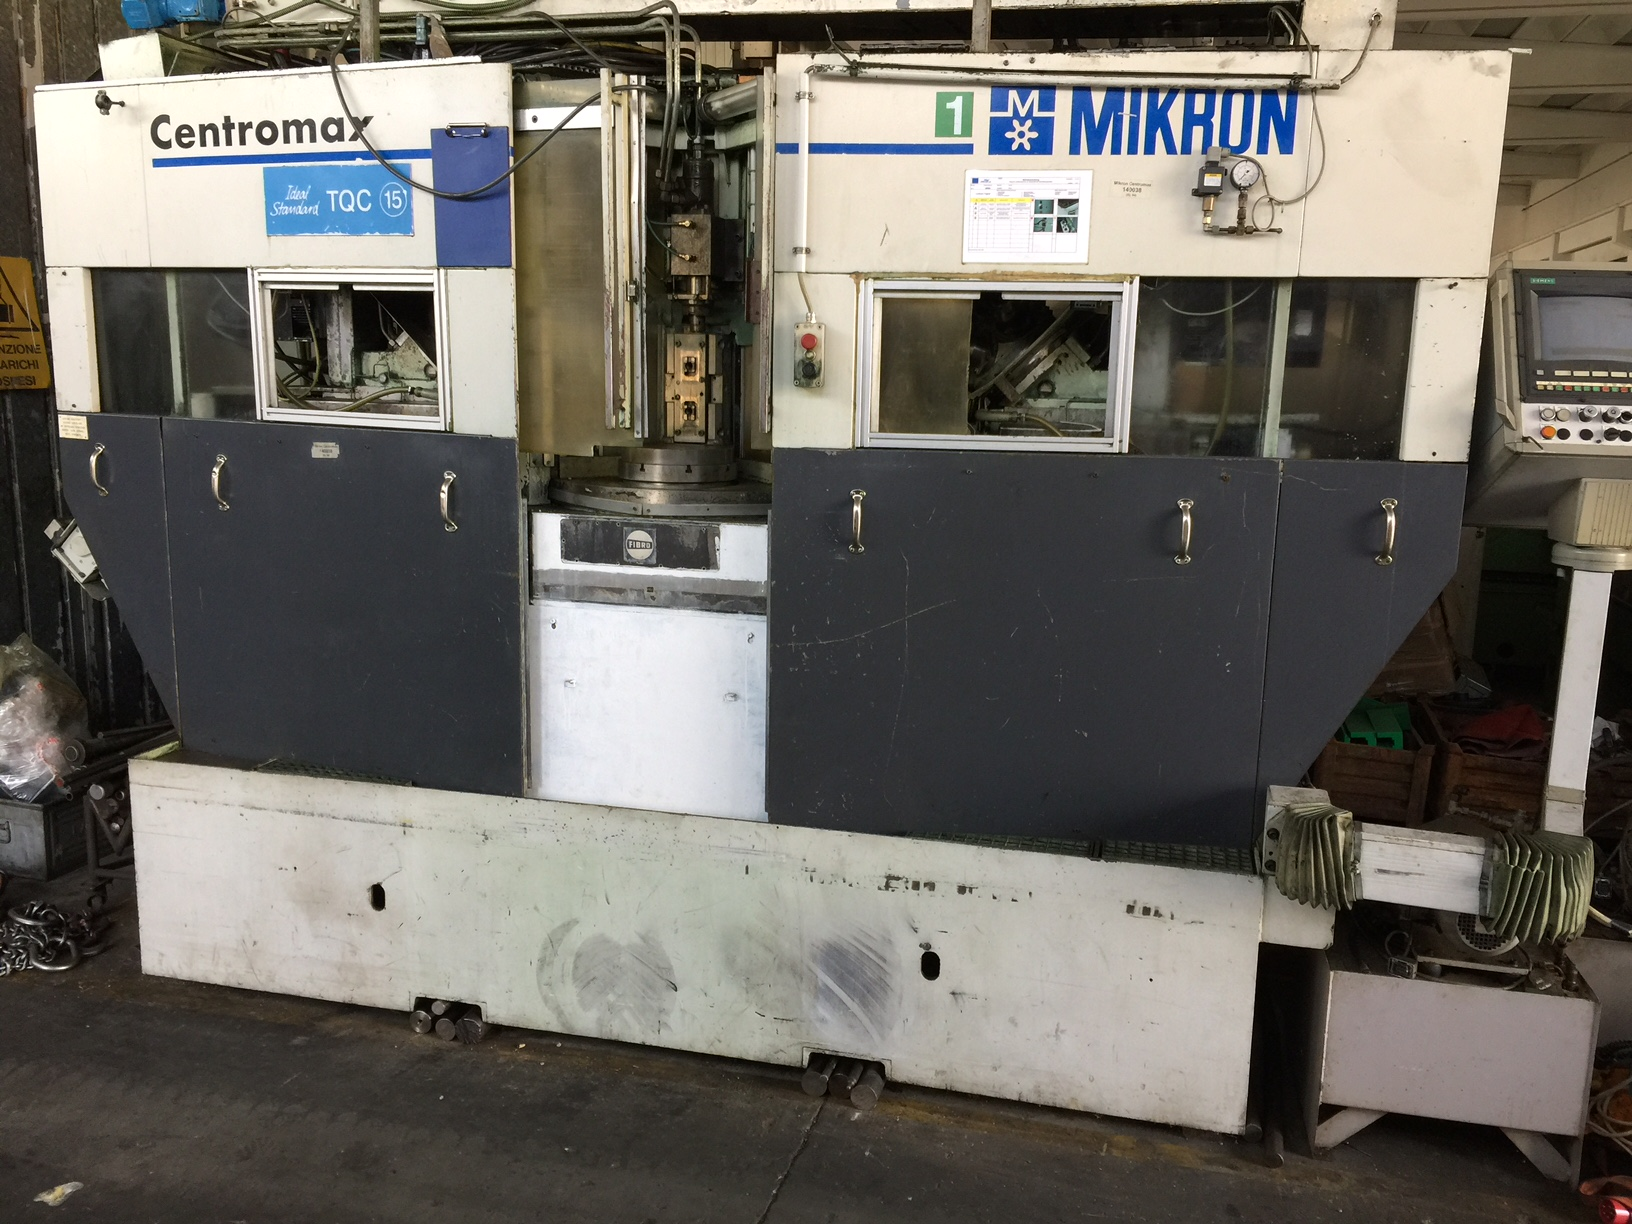 Lot 40 - Mikron Model CENTROMAX CNC Transfer Machine